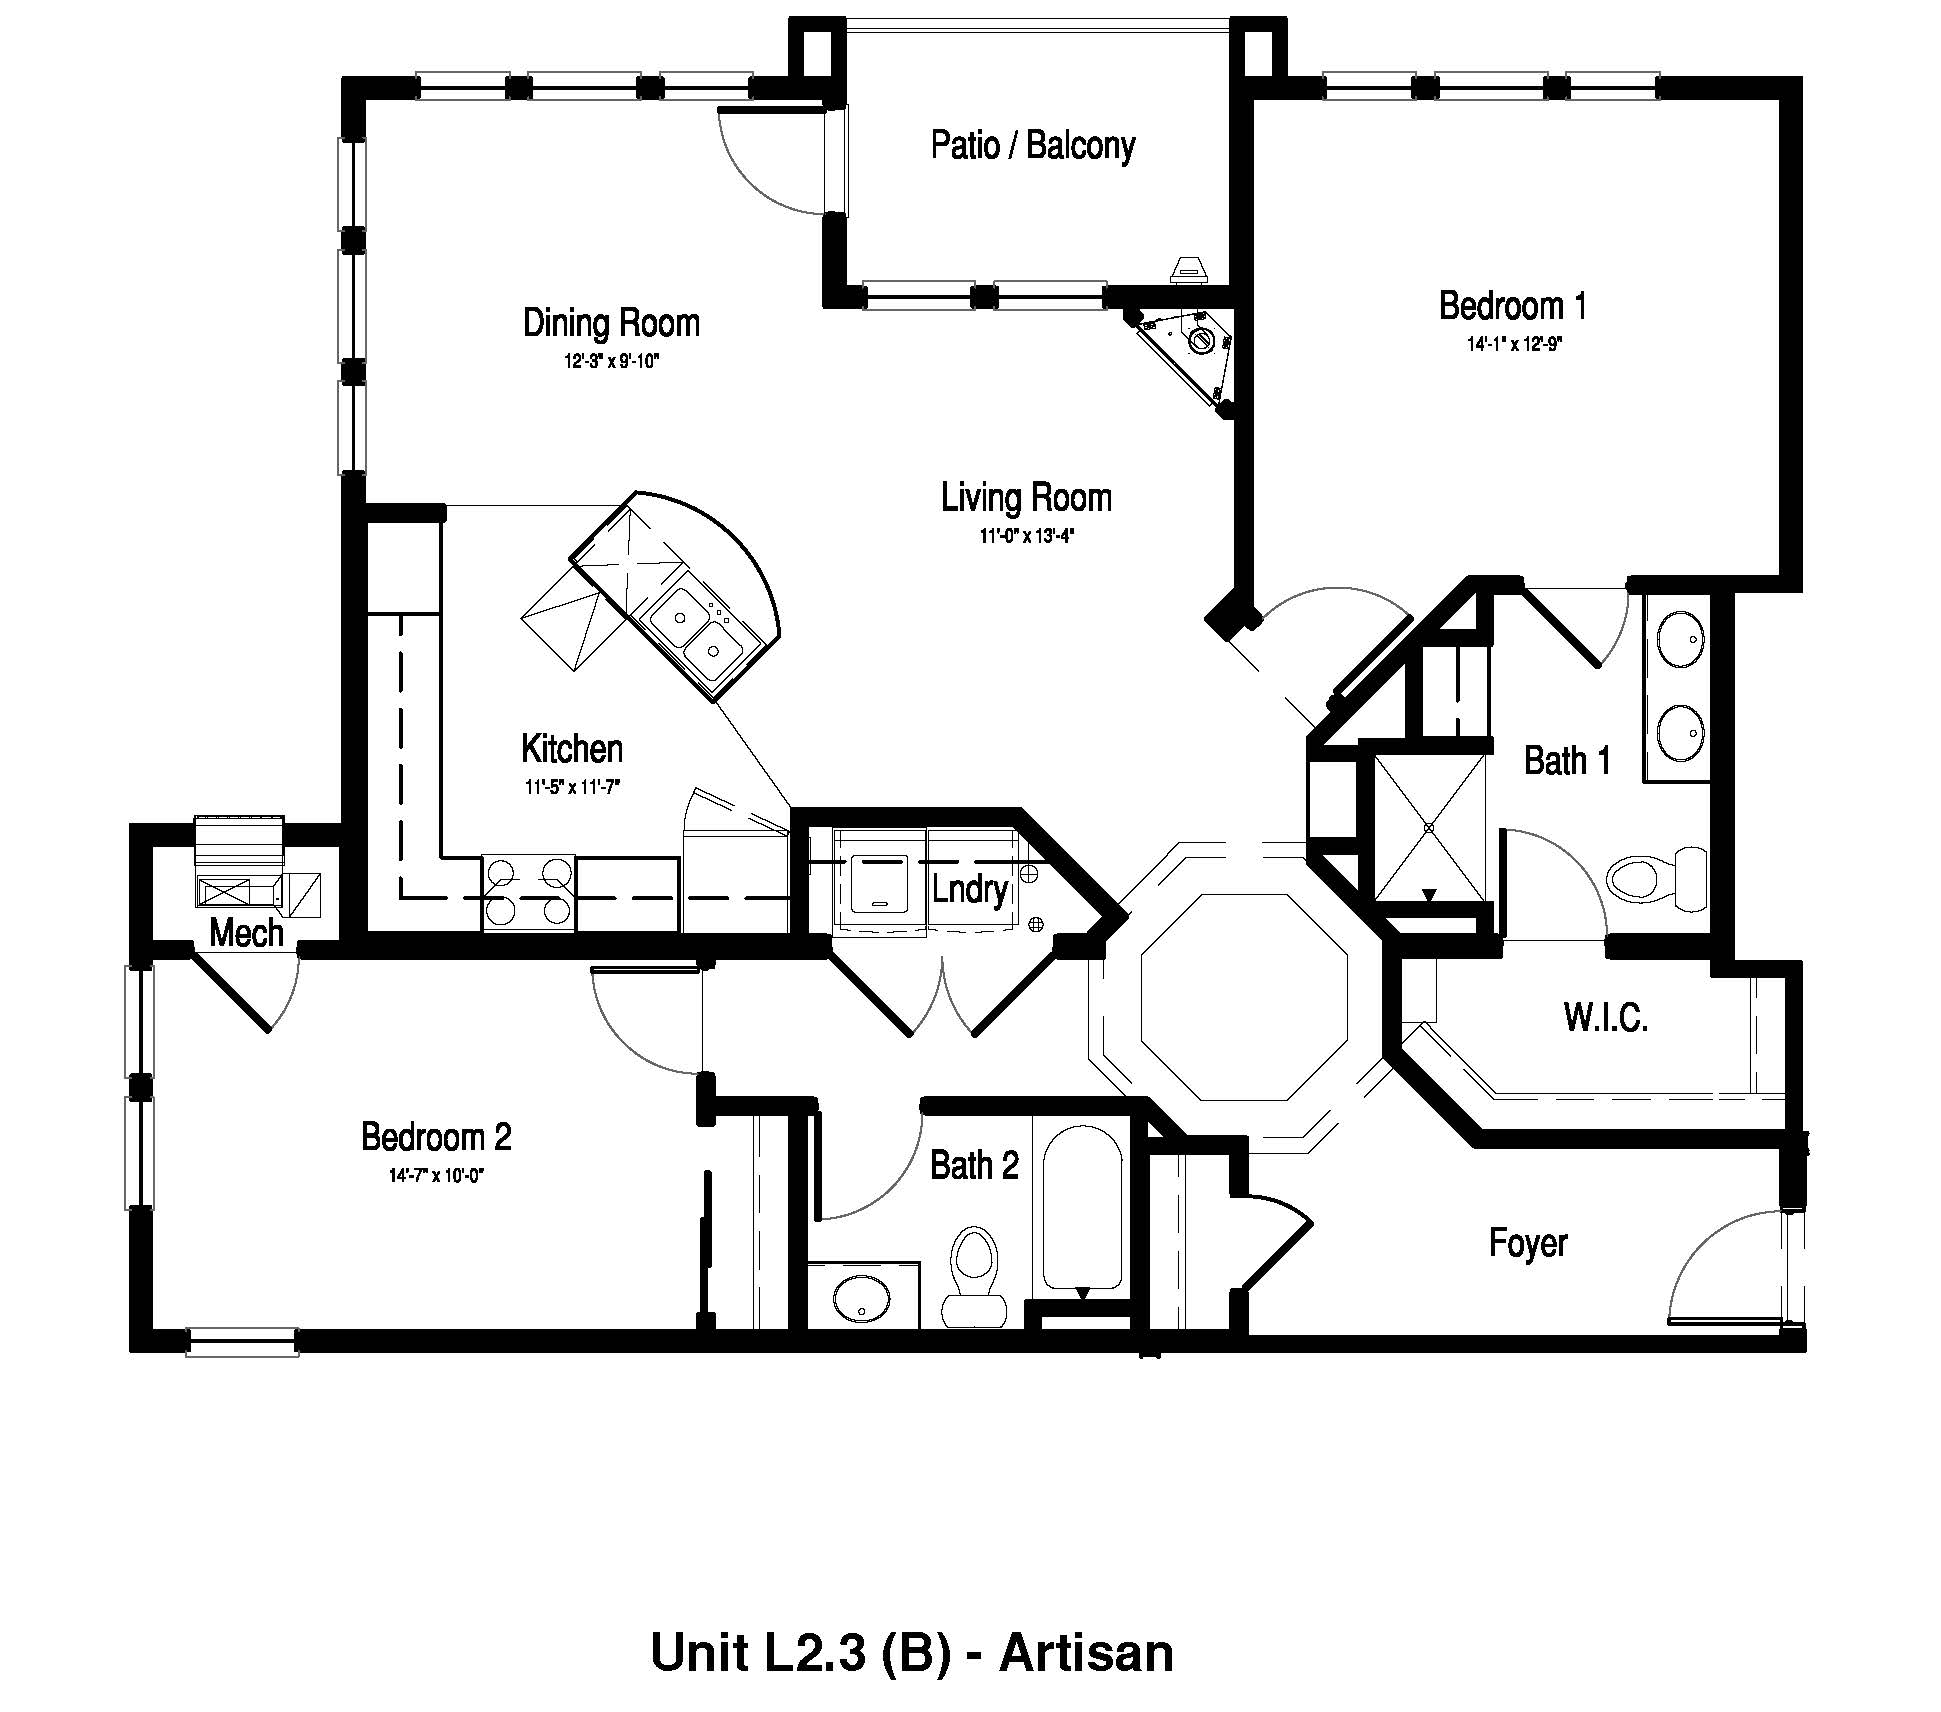 Two Bedroom, Two Bath - 1,222 - 1,325 Sq. Ft. - The Artisan at Georgetown Square